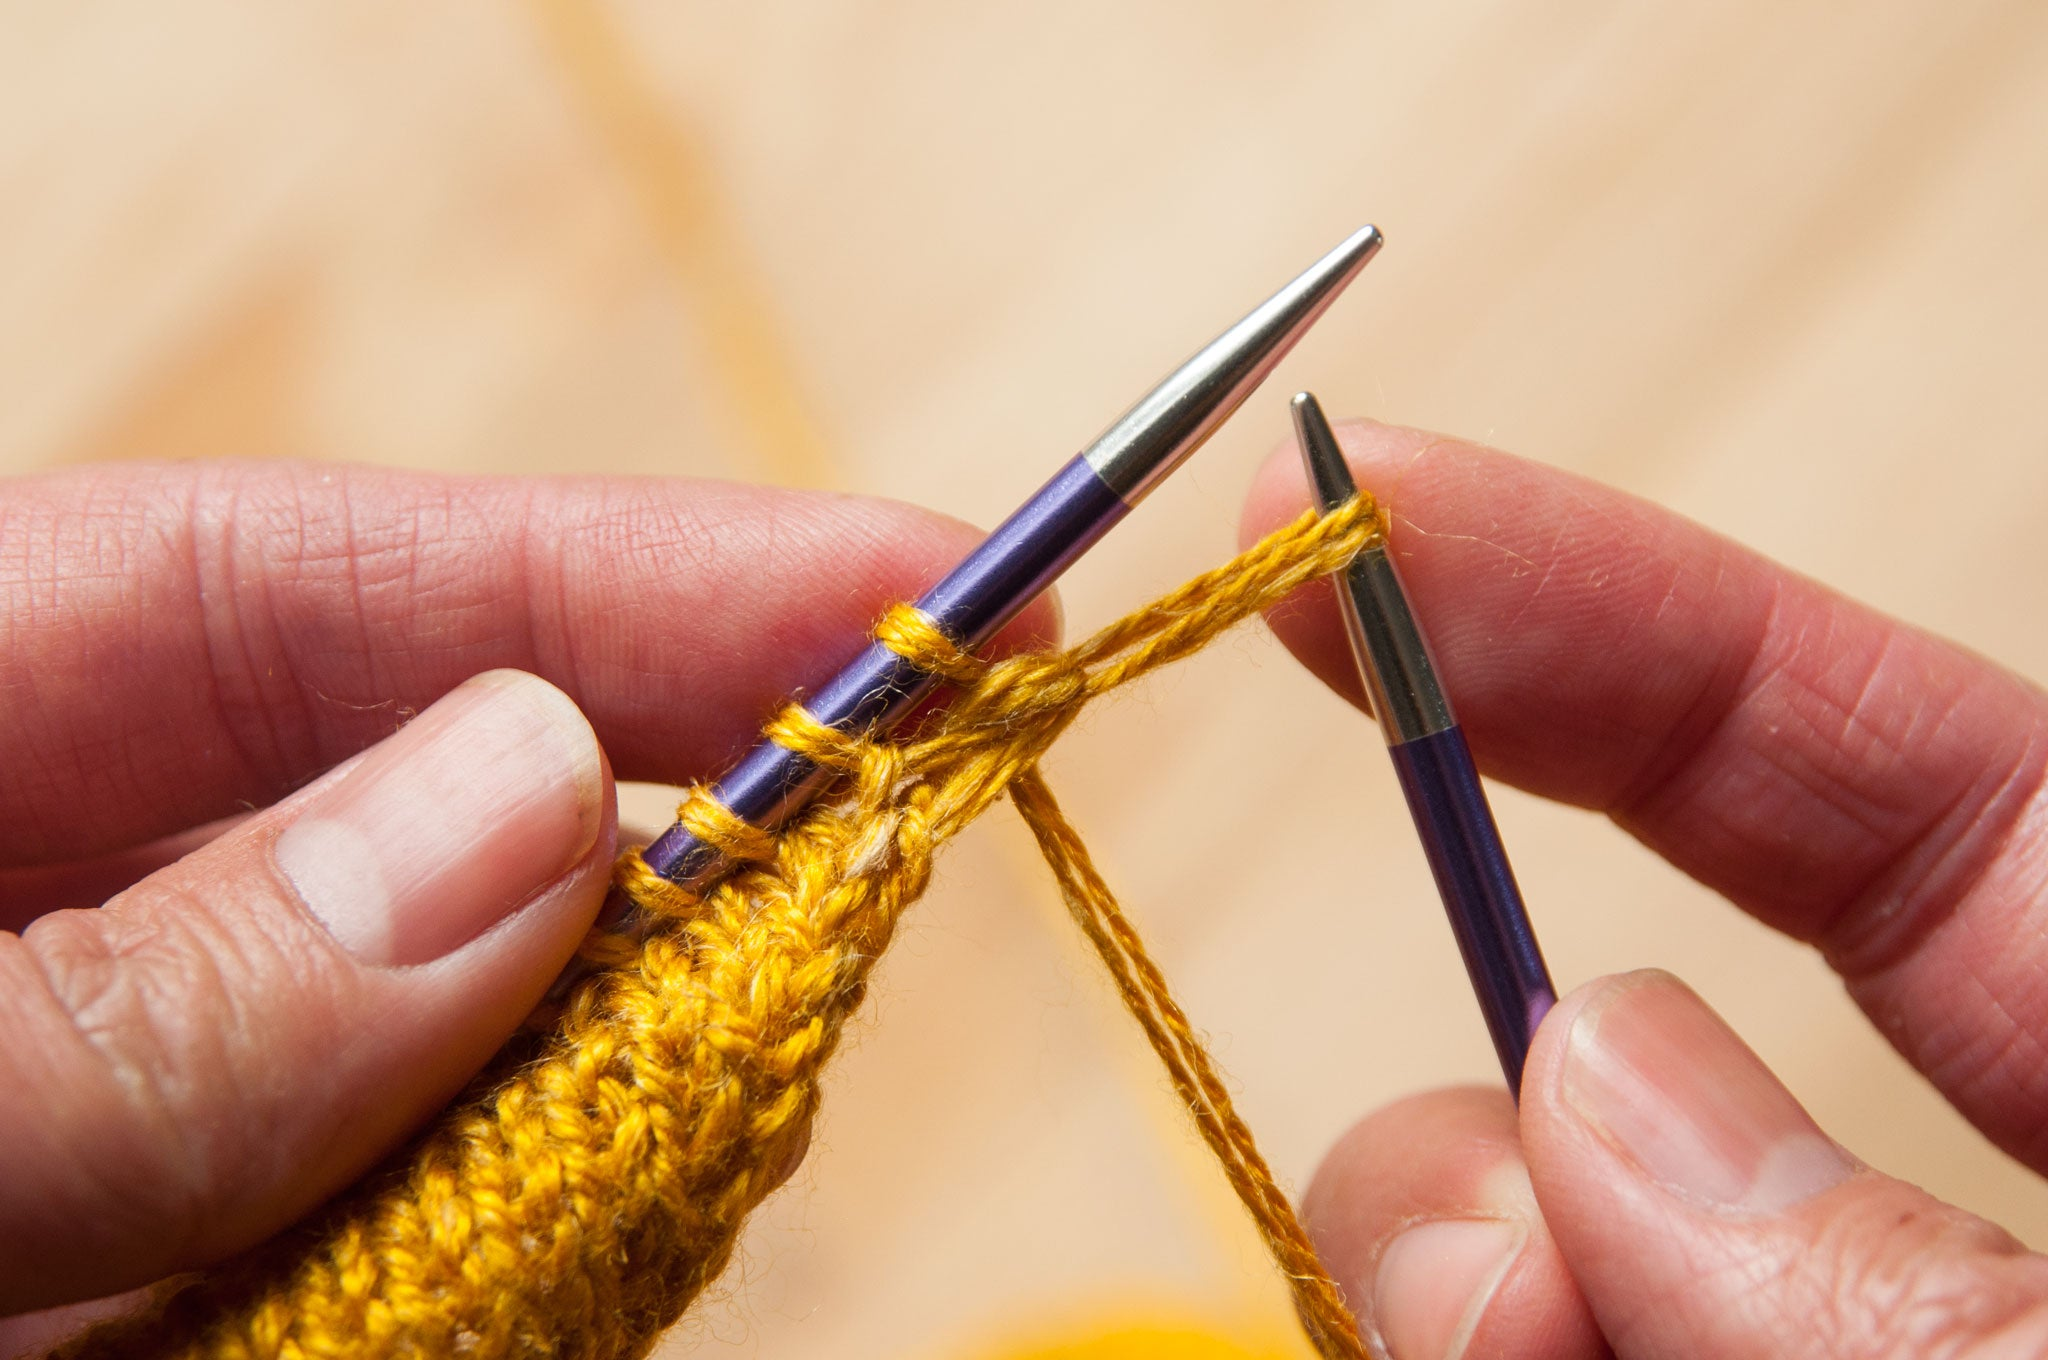 Elongate this stitch by pulling it towards you.